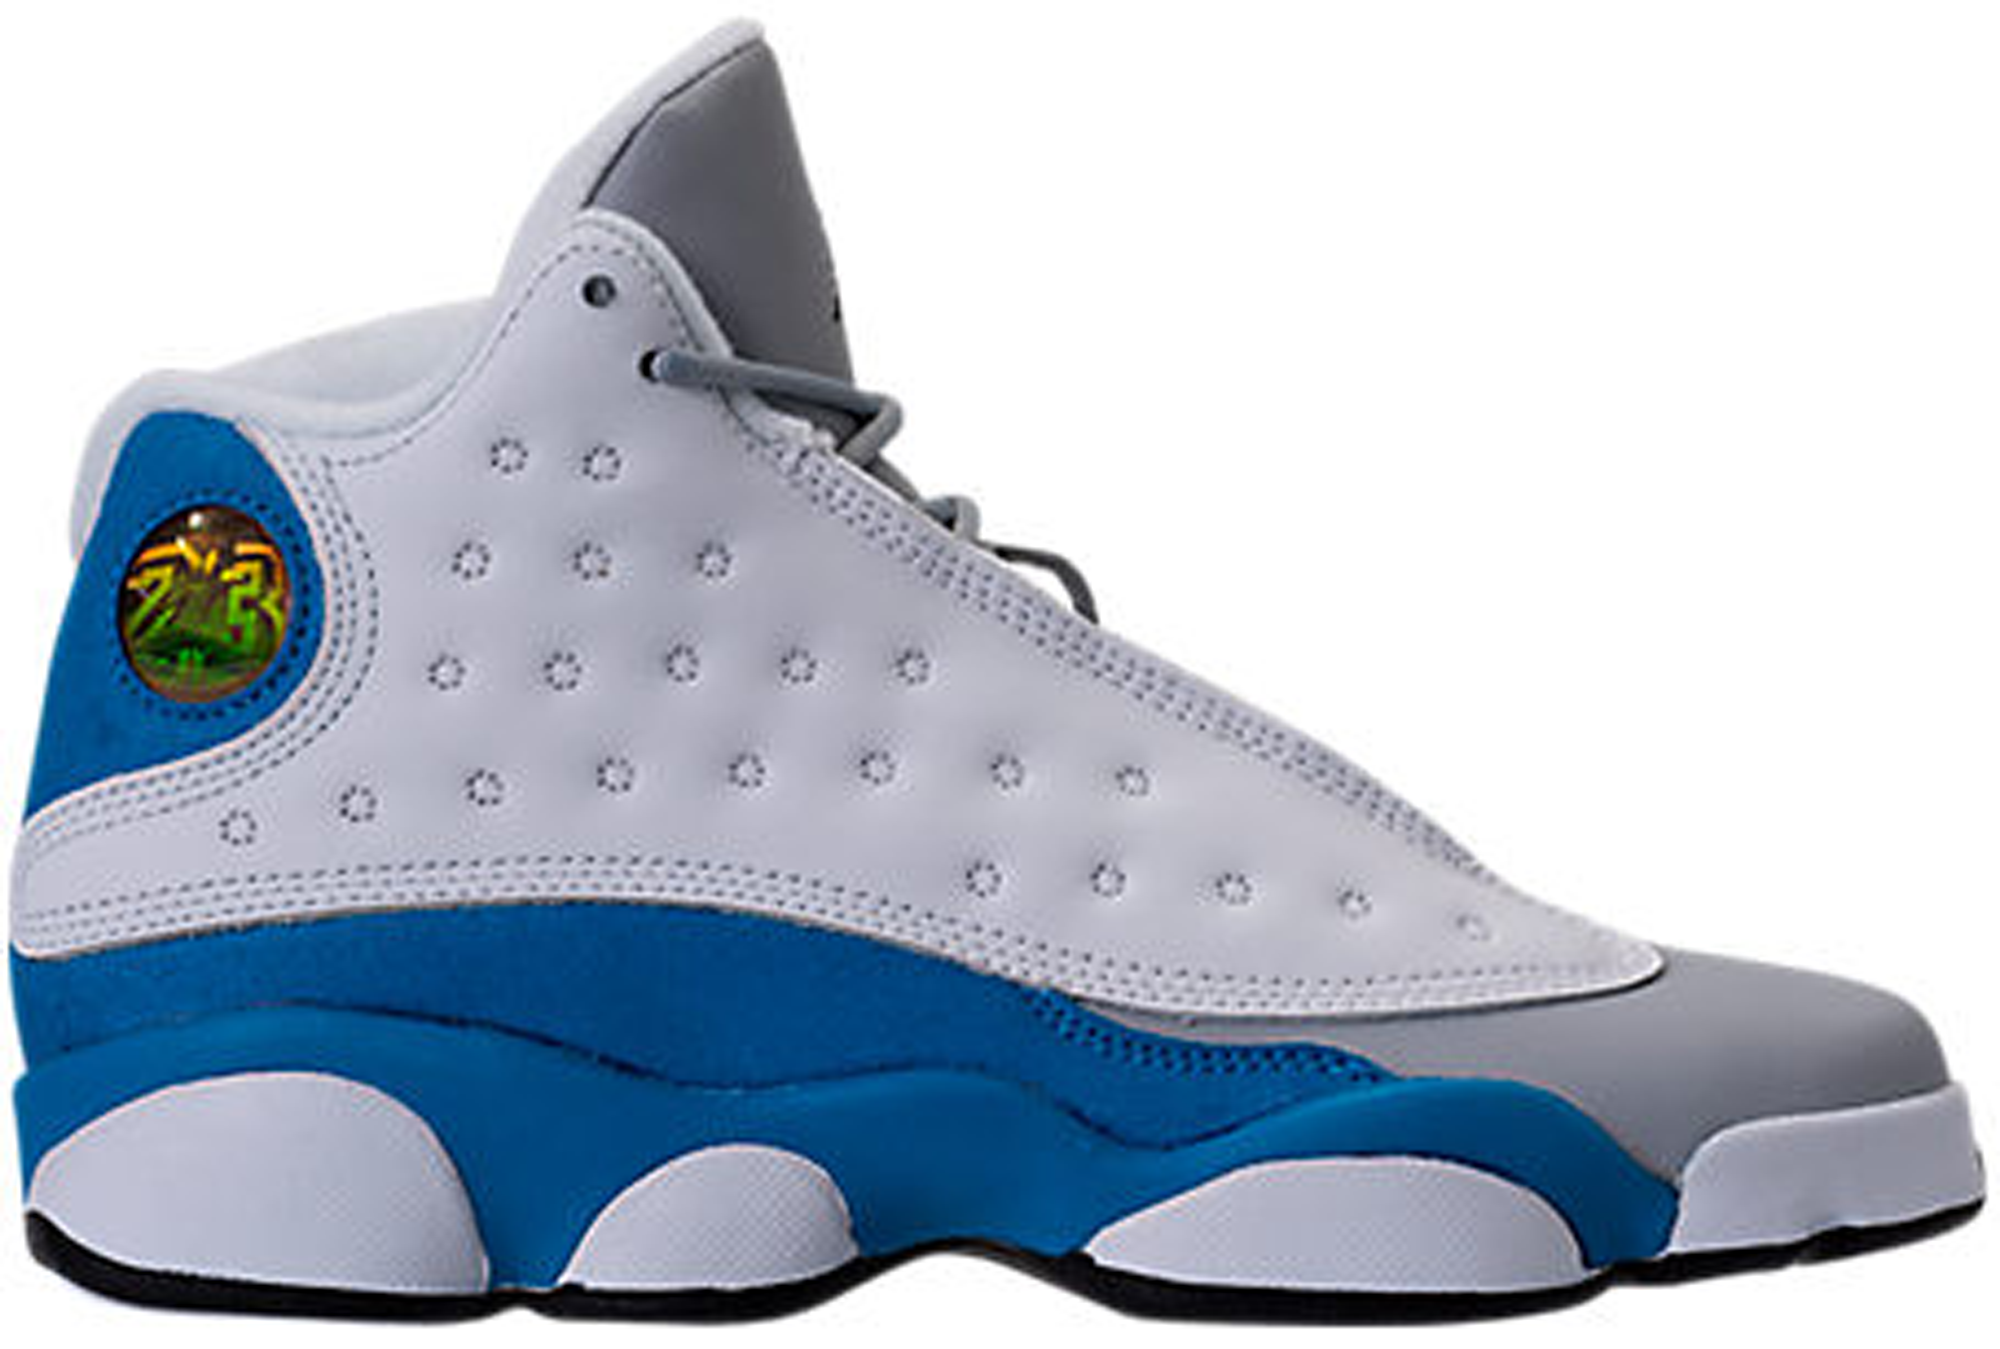 Jordan 13 Retro White Italy Blue (GS)